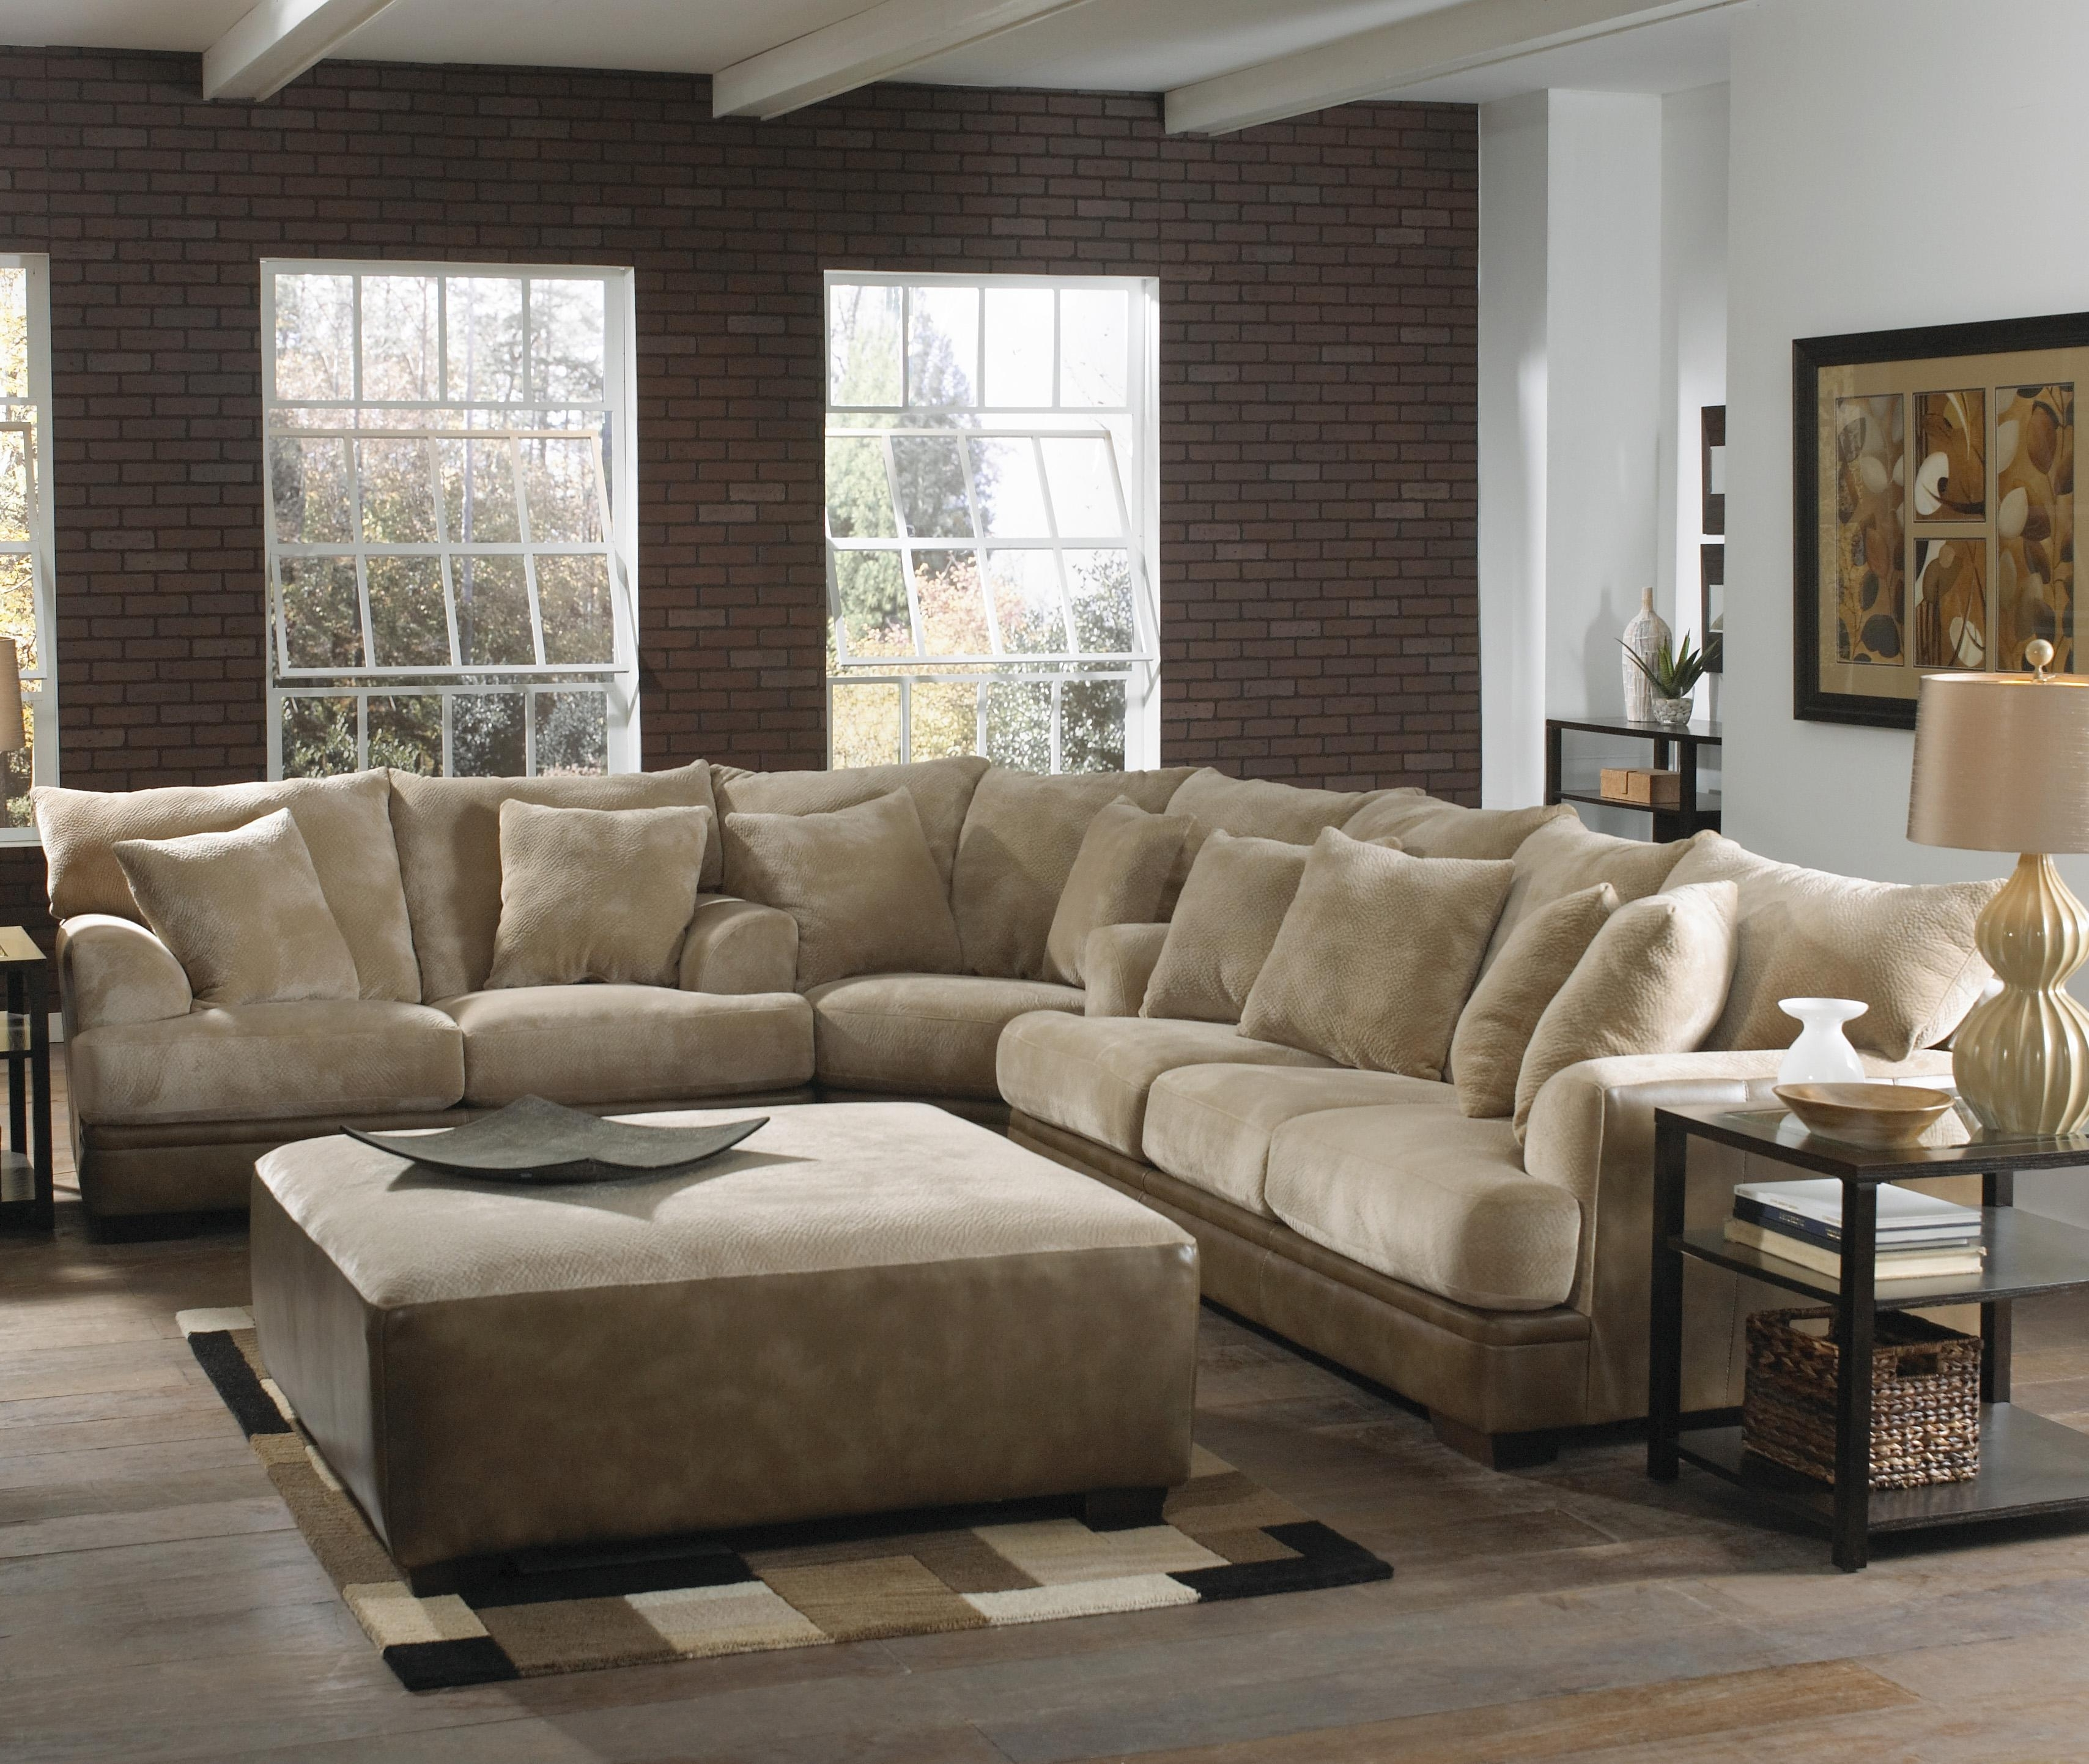 Rustic Wooden Laminate Flooring With Light Brown Sofa Using Pertaining To Well Liked Sectional Sofas At The Brick (View 8 of 15)